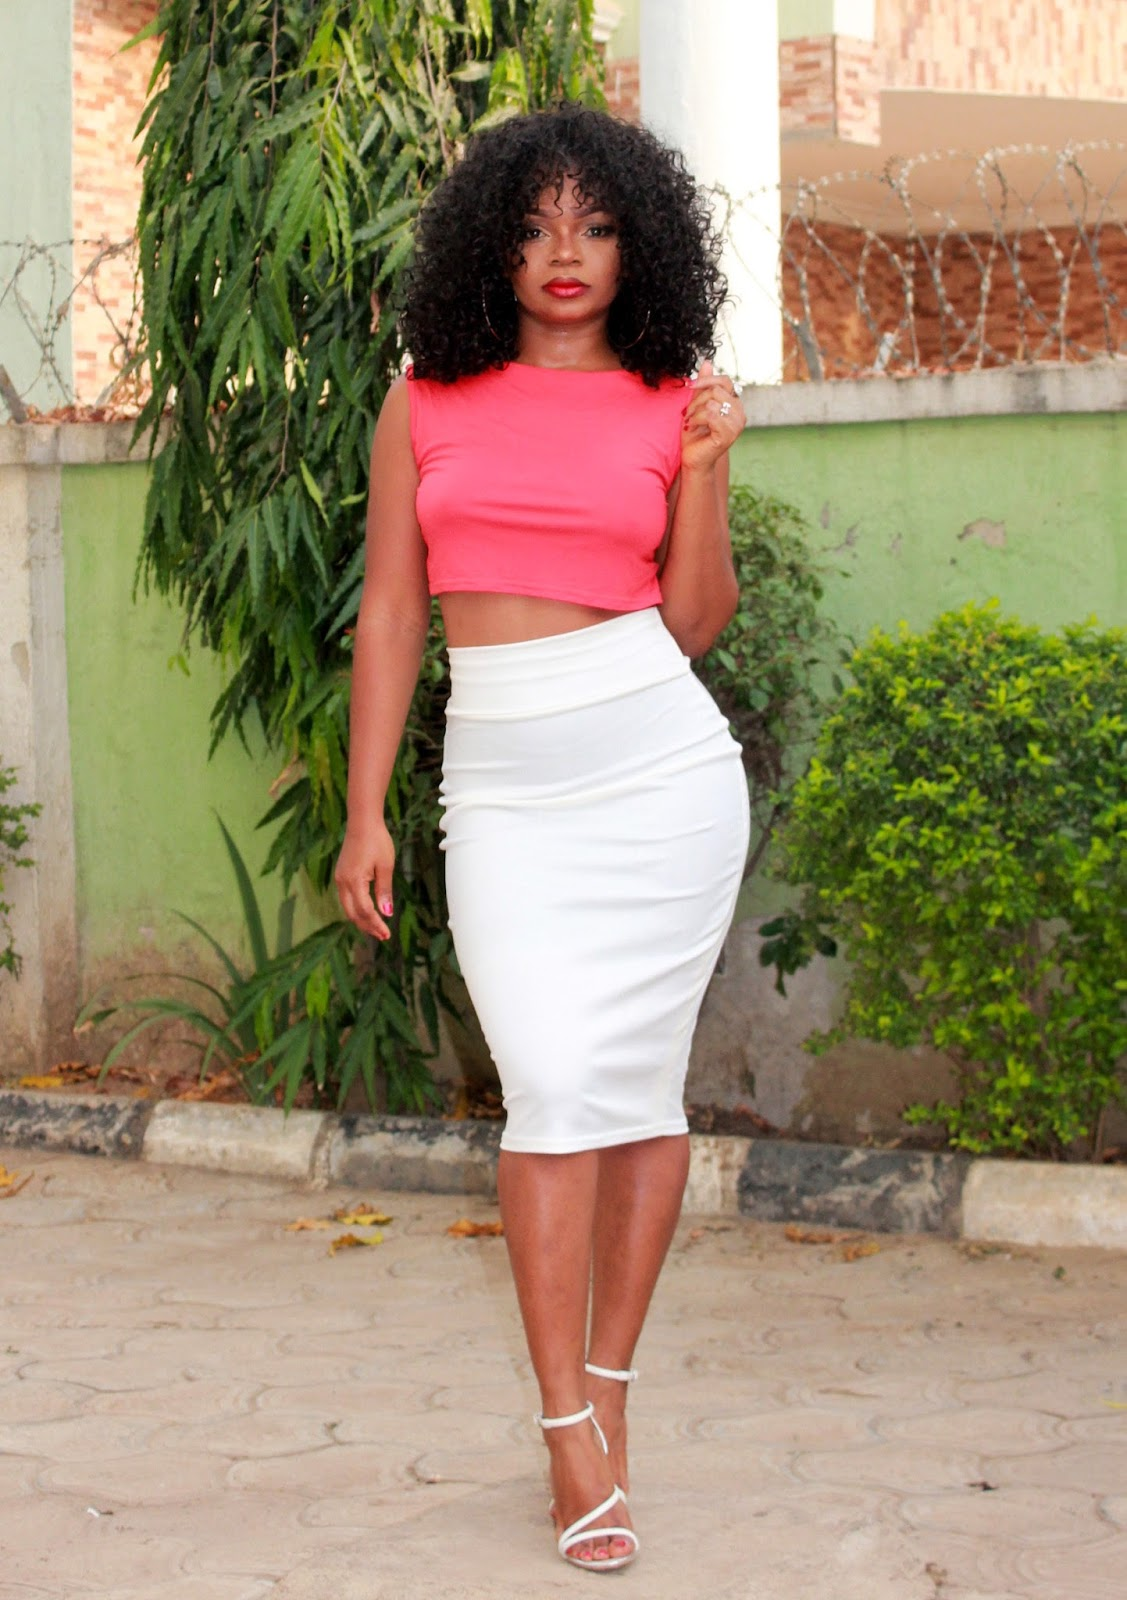 RED + WHITE - Red crop top from Boohoo, White midi skirt and white ankle strap sandals from Zara